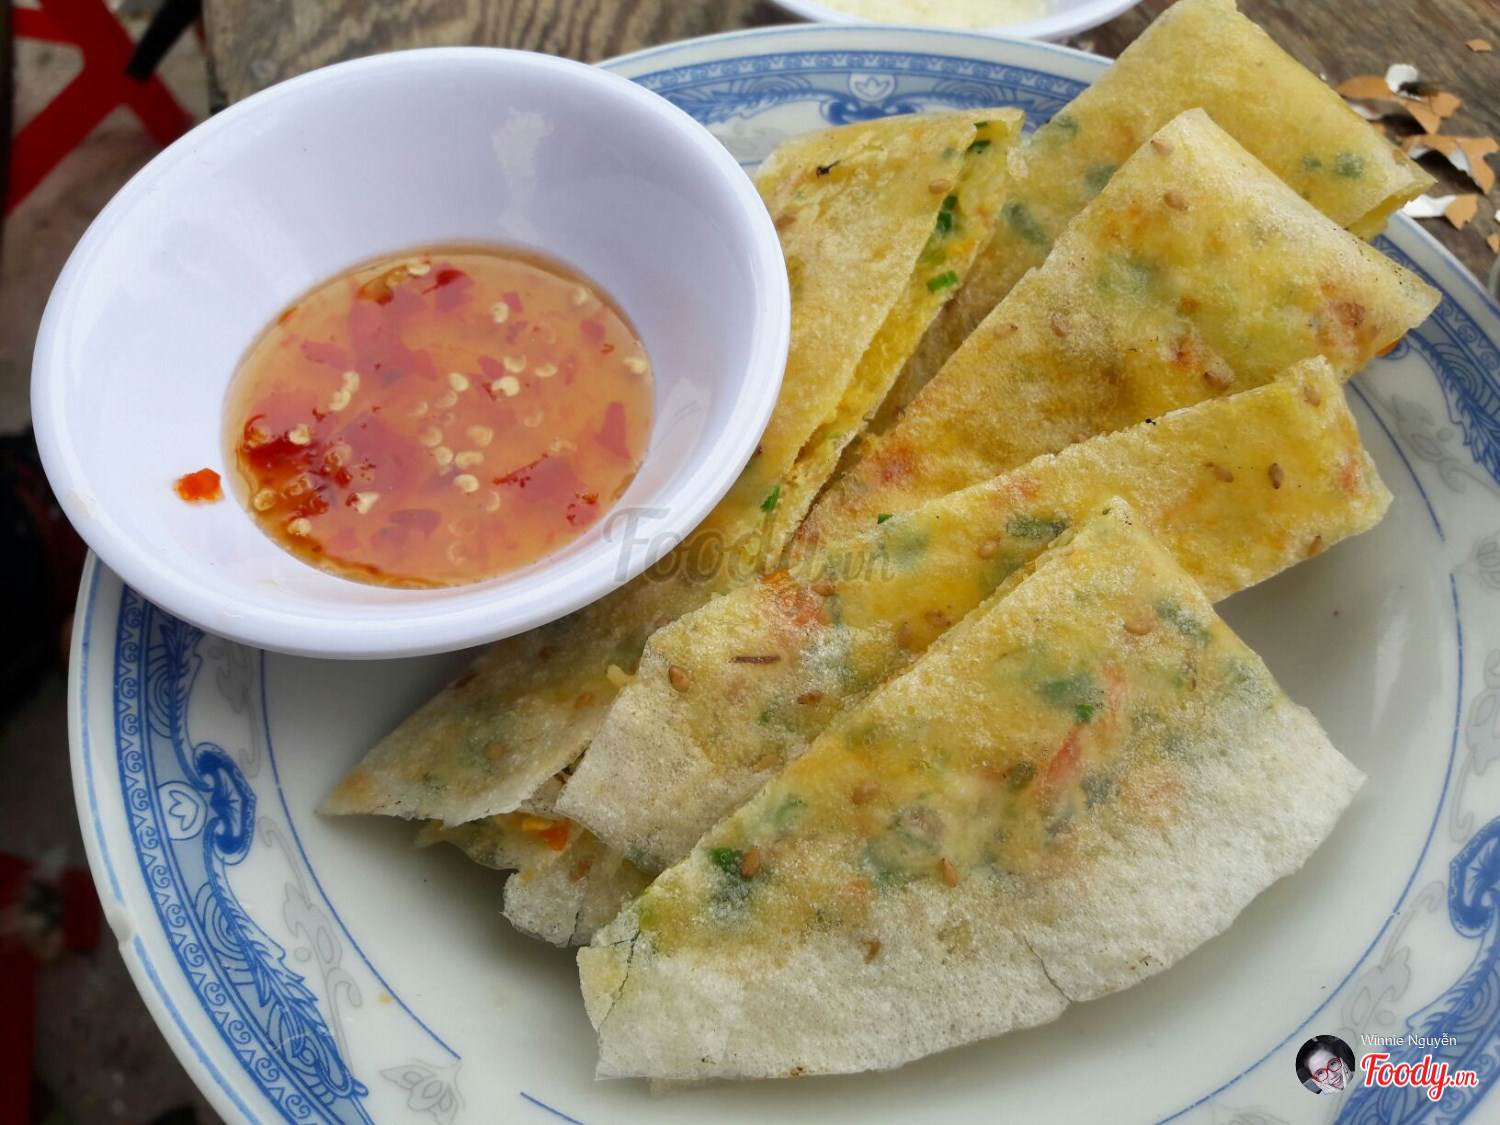 Description: http://media.foody.vn/images/foody-bai-nom-dao-binh-ba-90953-484-635815819555803515(1).jpg